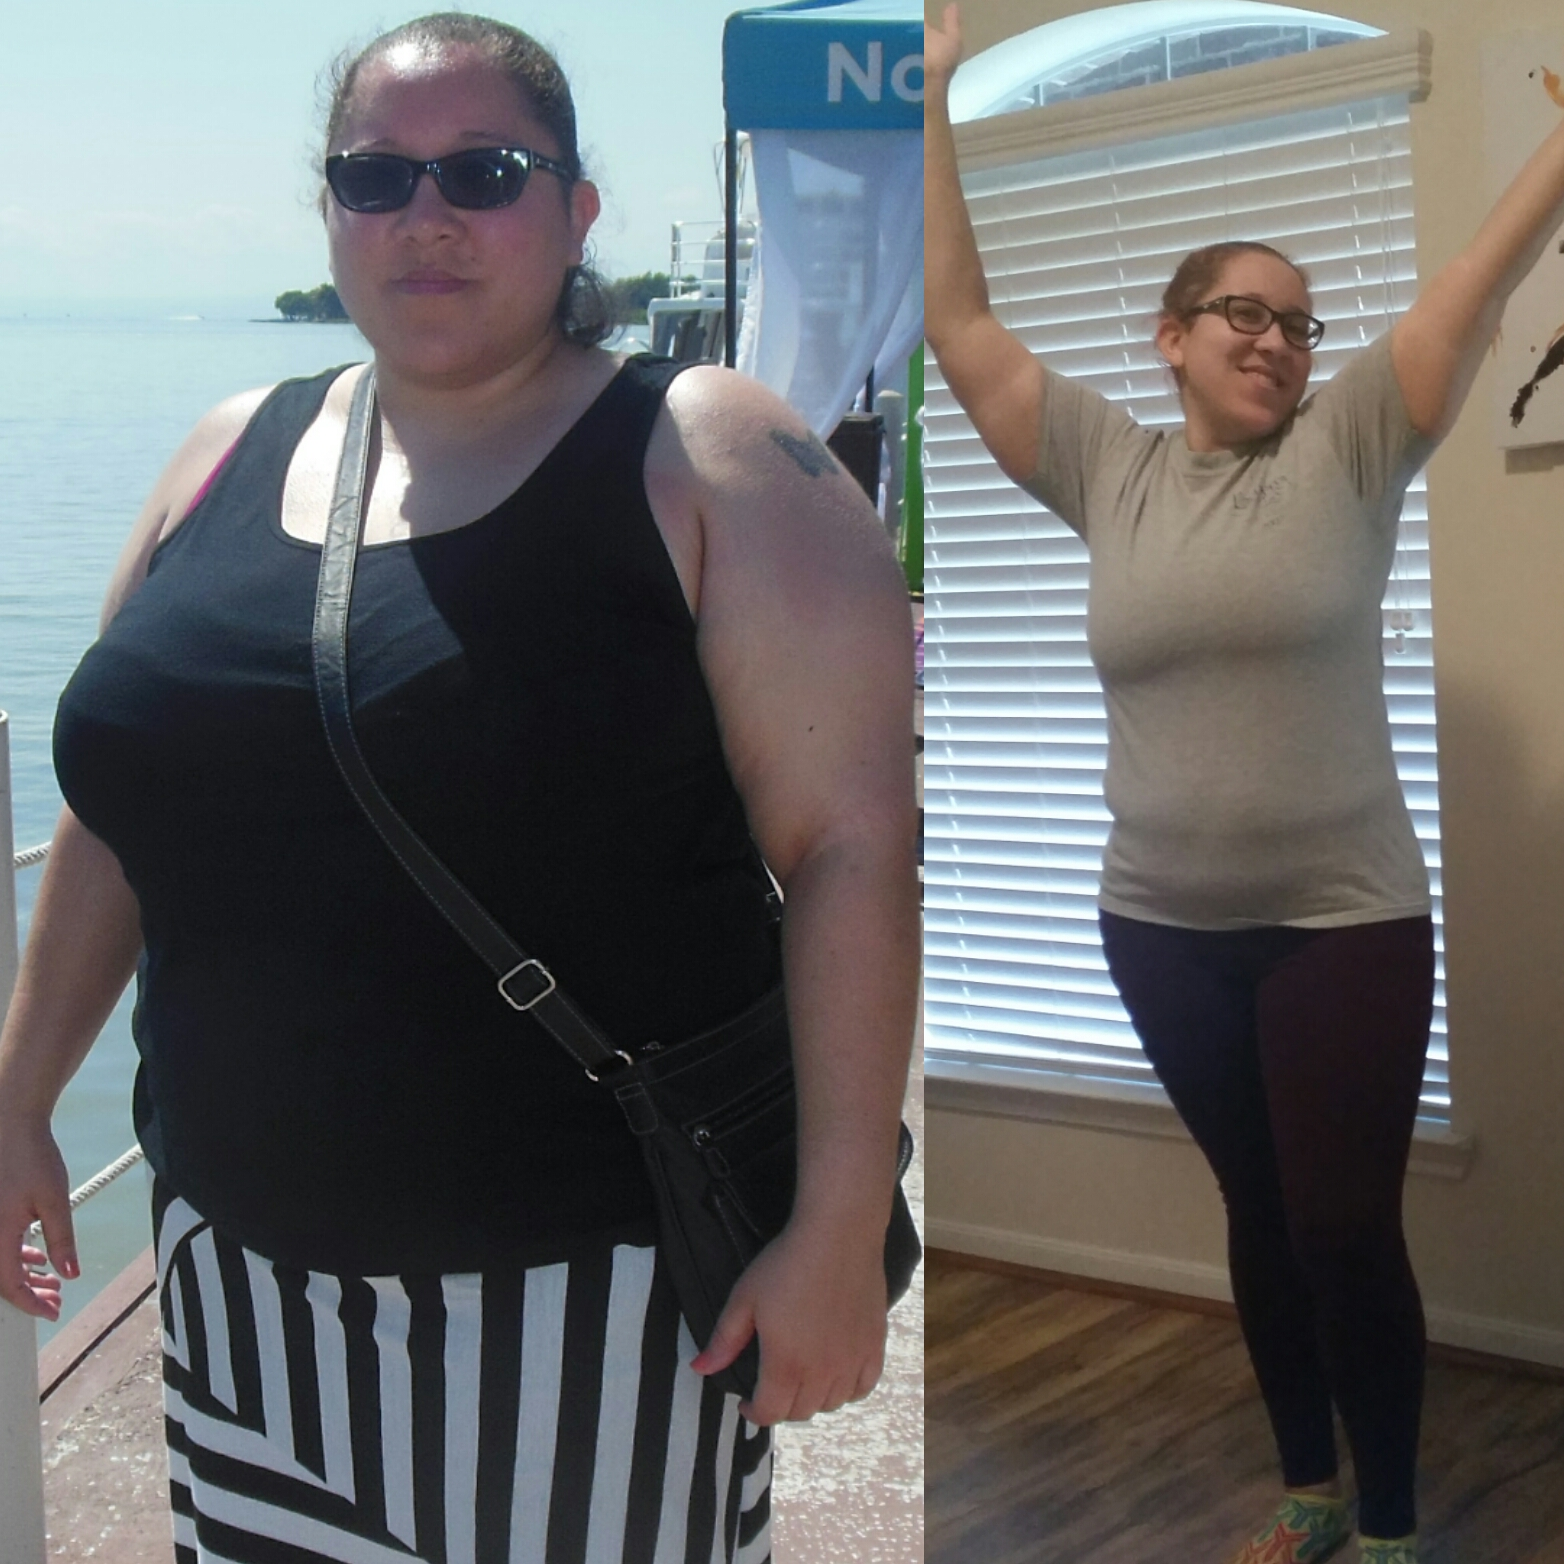 Great success story! Read before and after fitness transformation stories from women and men who hit weight loss goals and got THAT BODY with training and meal prep. Find inspiration, motivation, and workout tips | 90 Pound Transformation in progress!